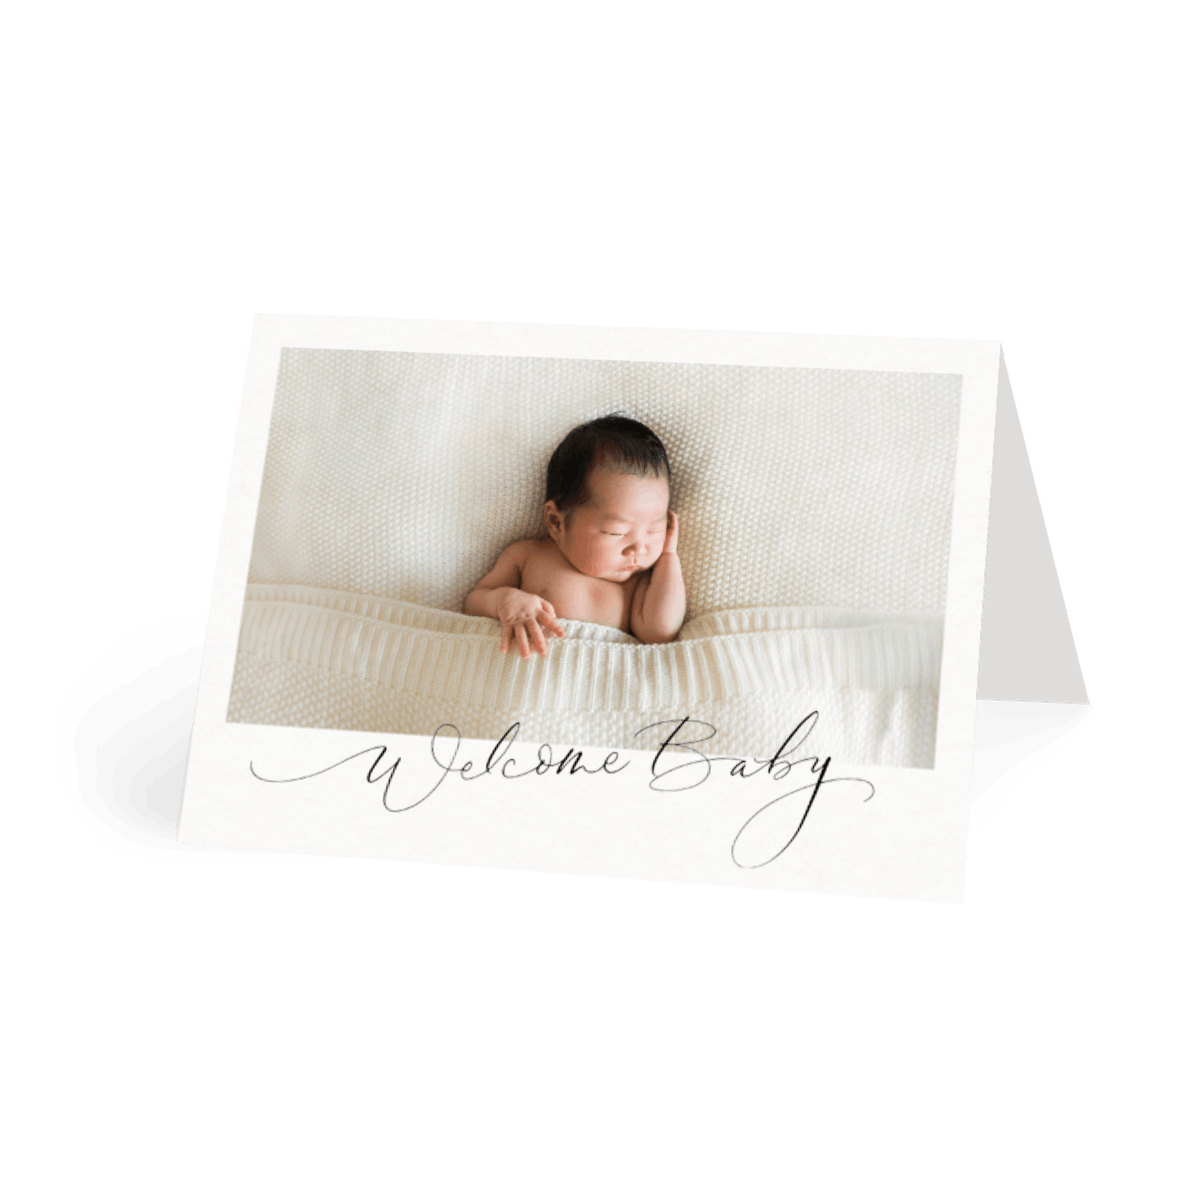 Https%3a%2f%2fwww.papier.com%2fproduct image%2f26319%2f14%2fwelcome baby photo 6597 front 1542200261.png?ixlib=rb 1.1